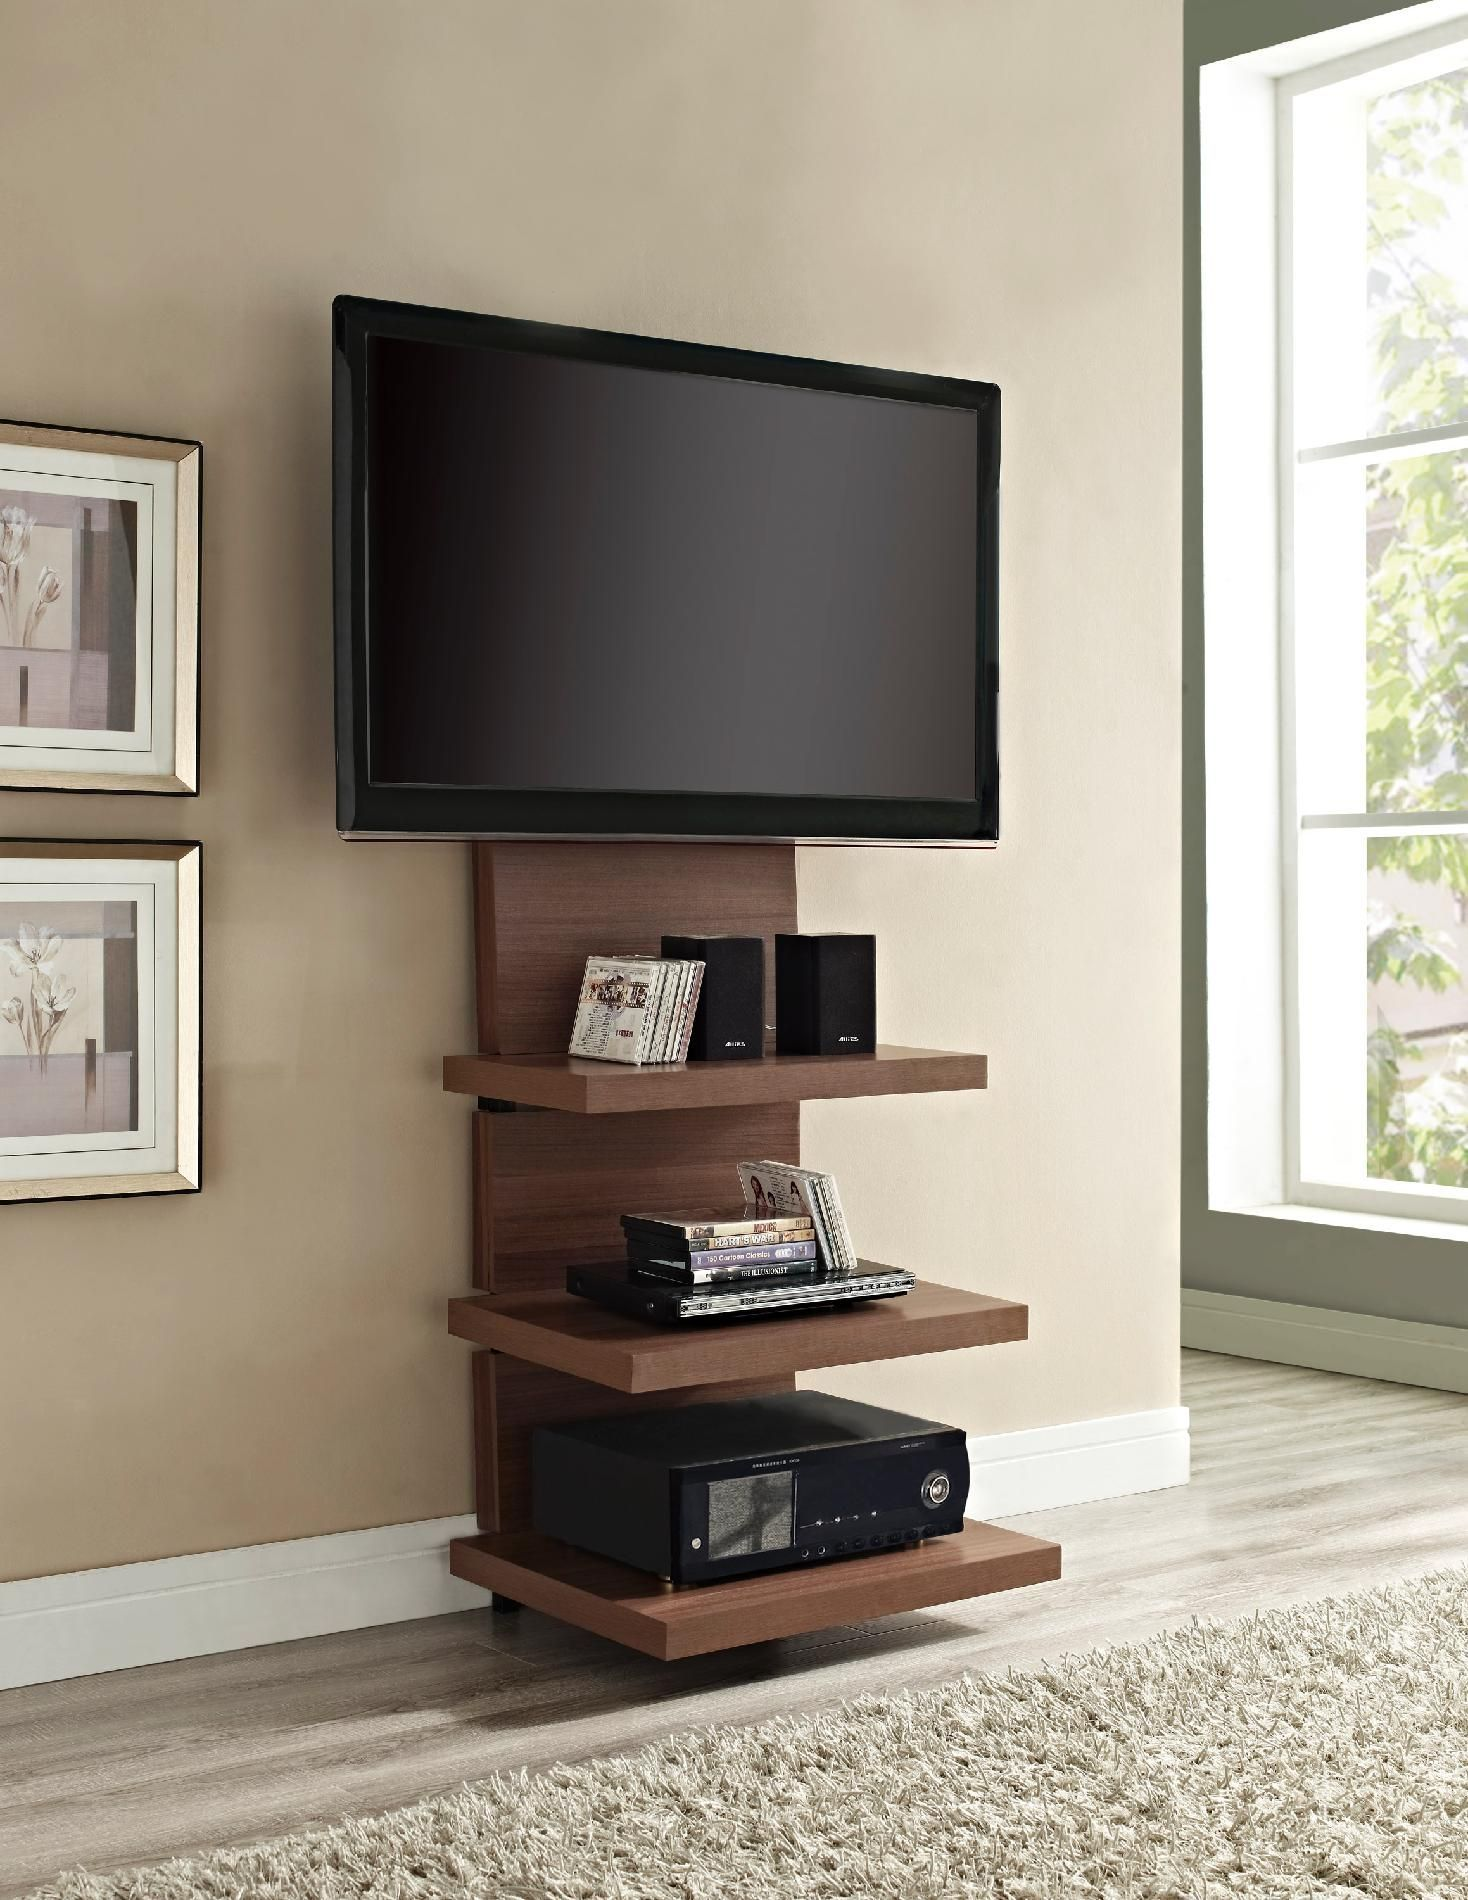 28 Amazing Diy Tv Stand Ideas That You Can Build Right Now